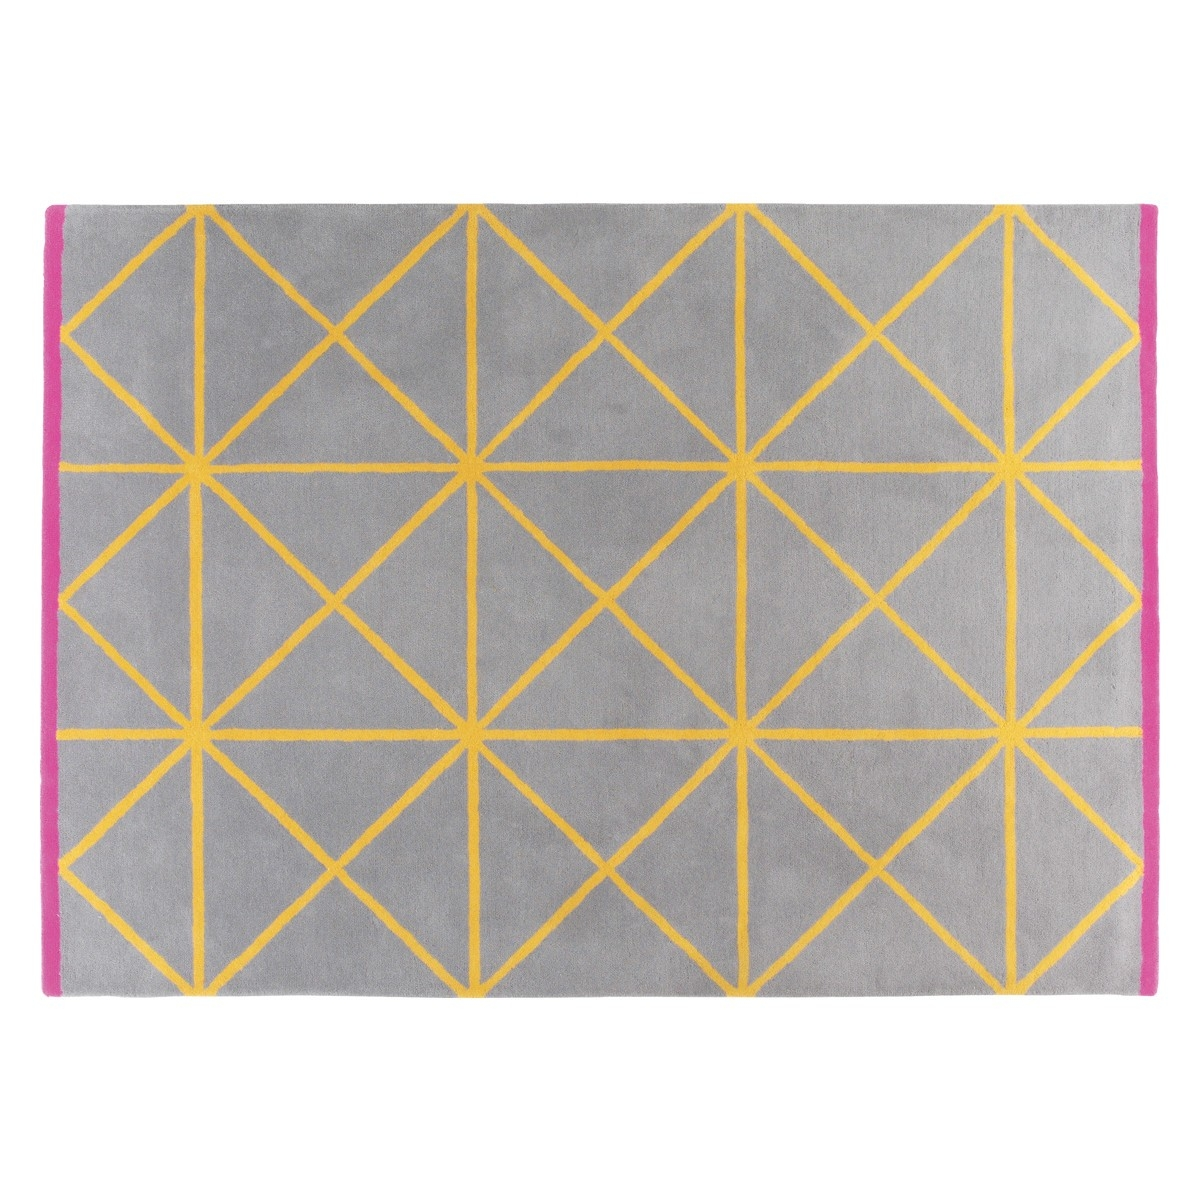 Grid Large Grey And Yellow Geometric Wool Rug 170 X 240cm Buy For Large Geometric Rugs (View 2 of 15)